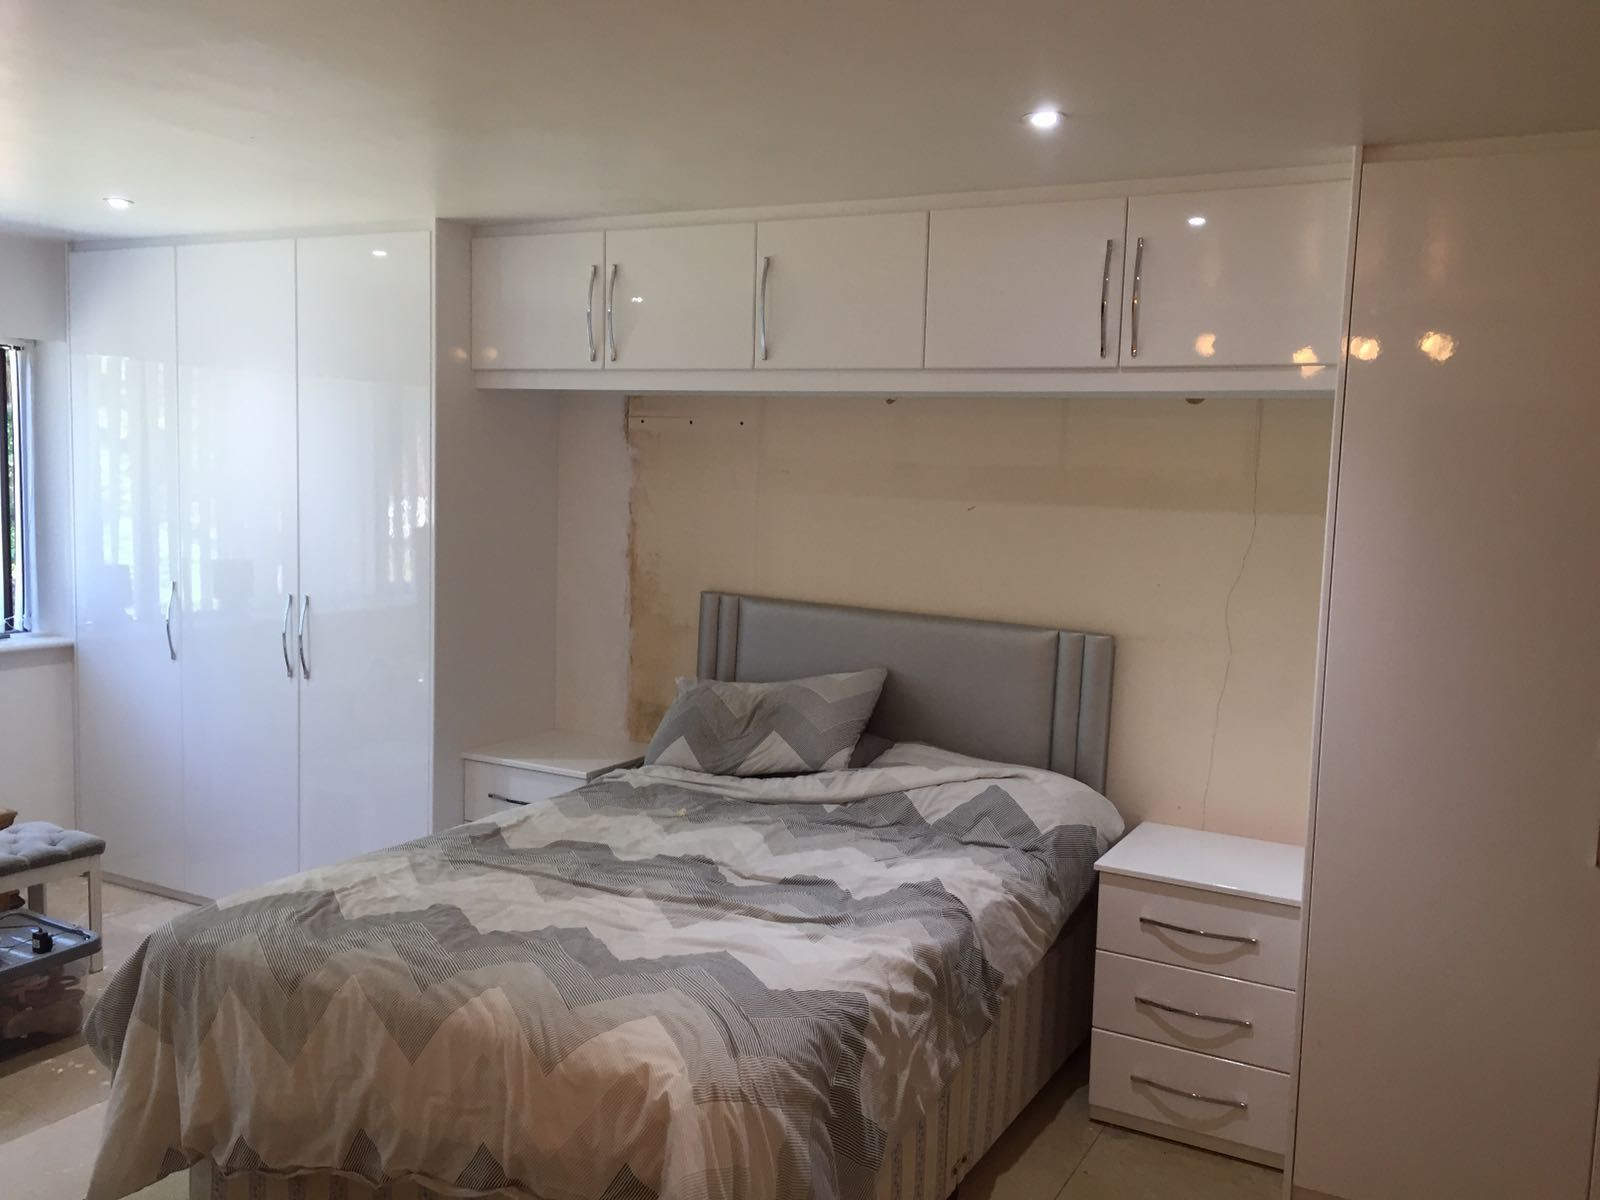 You Really Can Create So Much Space With Storage Over Your Bed Triple Wardrobe Matching Wardrobe Design Bedroom Design Your Bedroom Fitted Bedroom Furniture